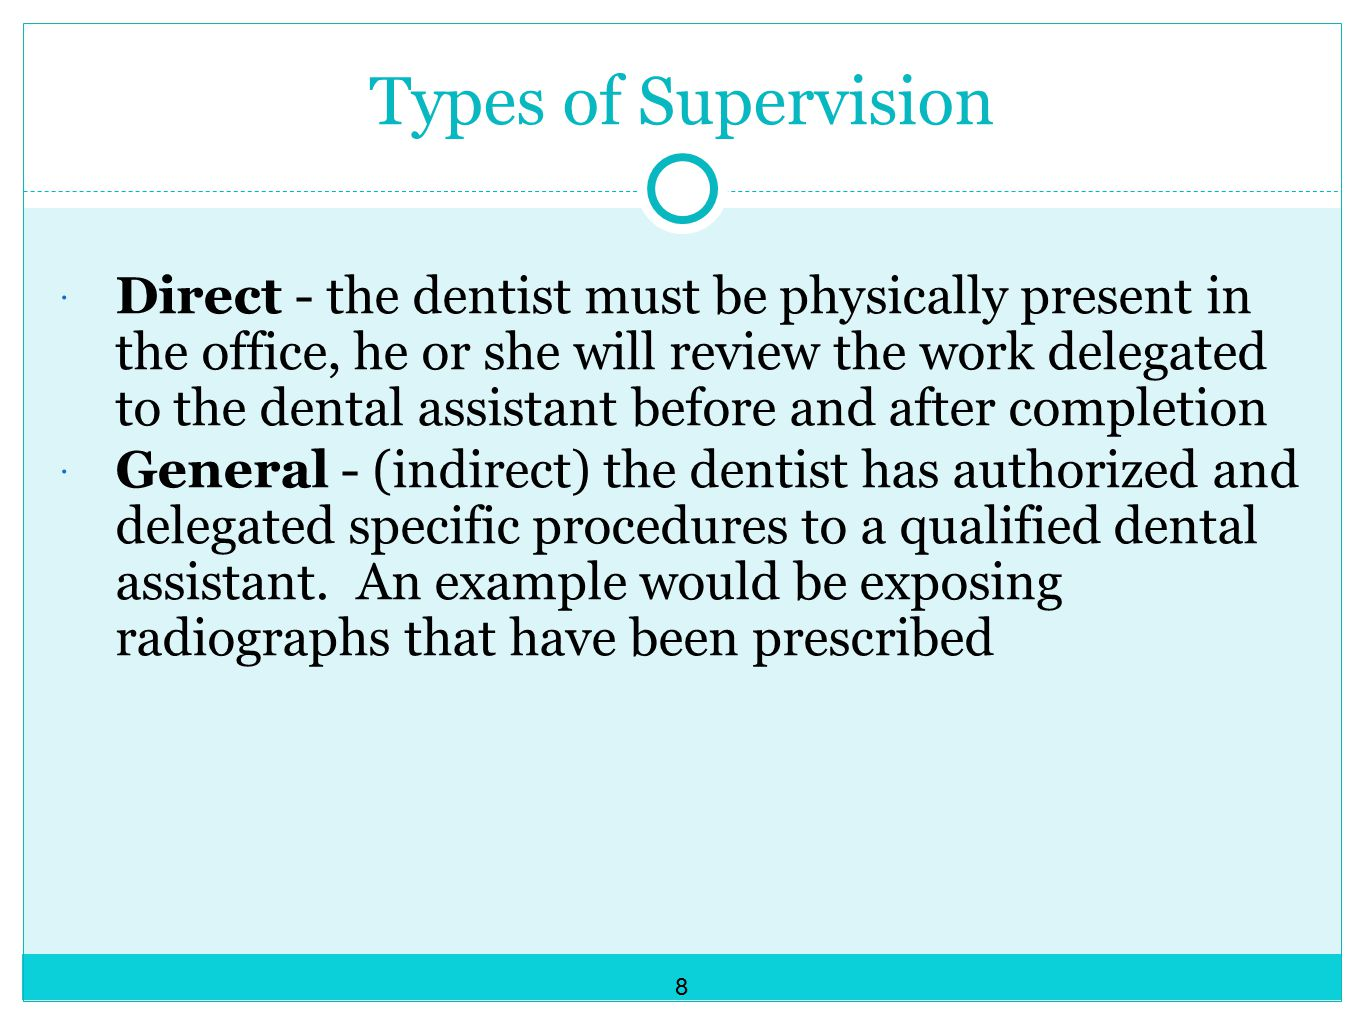 Types of Supervision  Direct - the dentist must be physically present in the office, he or she will review the work delegated to the dental assistant before and after completion  General - (indirect) the dentist has authorized and delegated specific procedures to a qualified dental assistant.